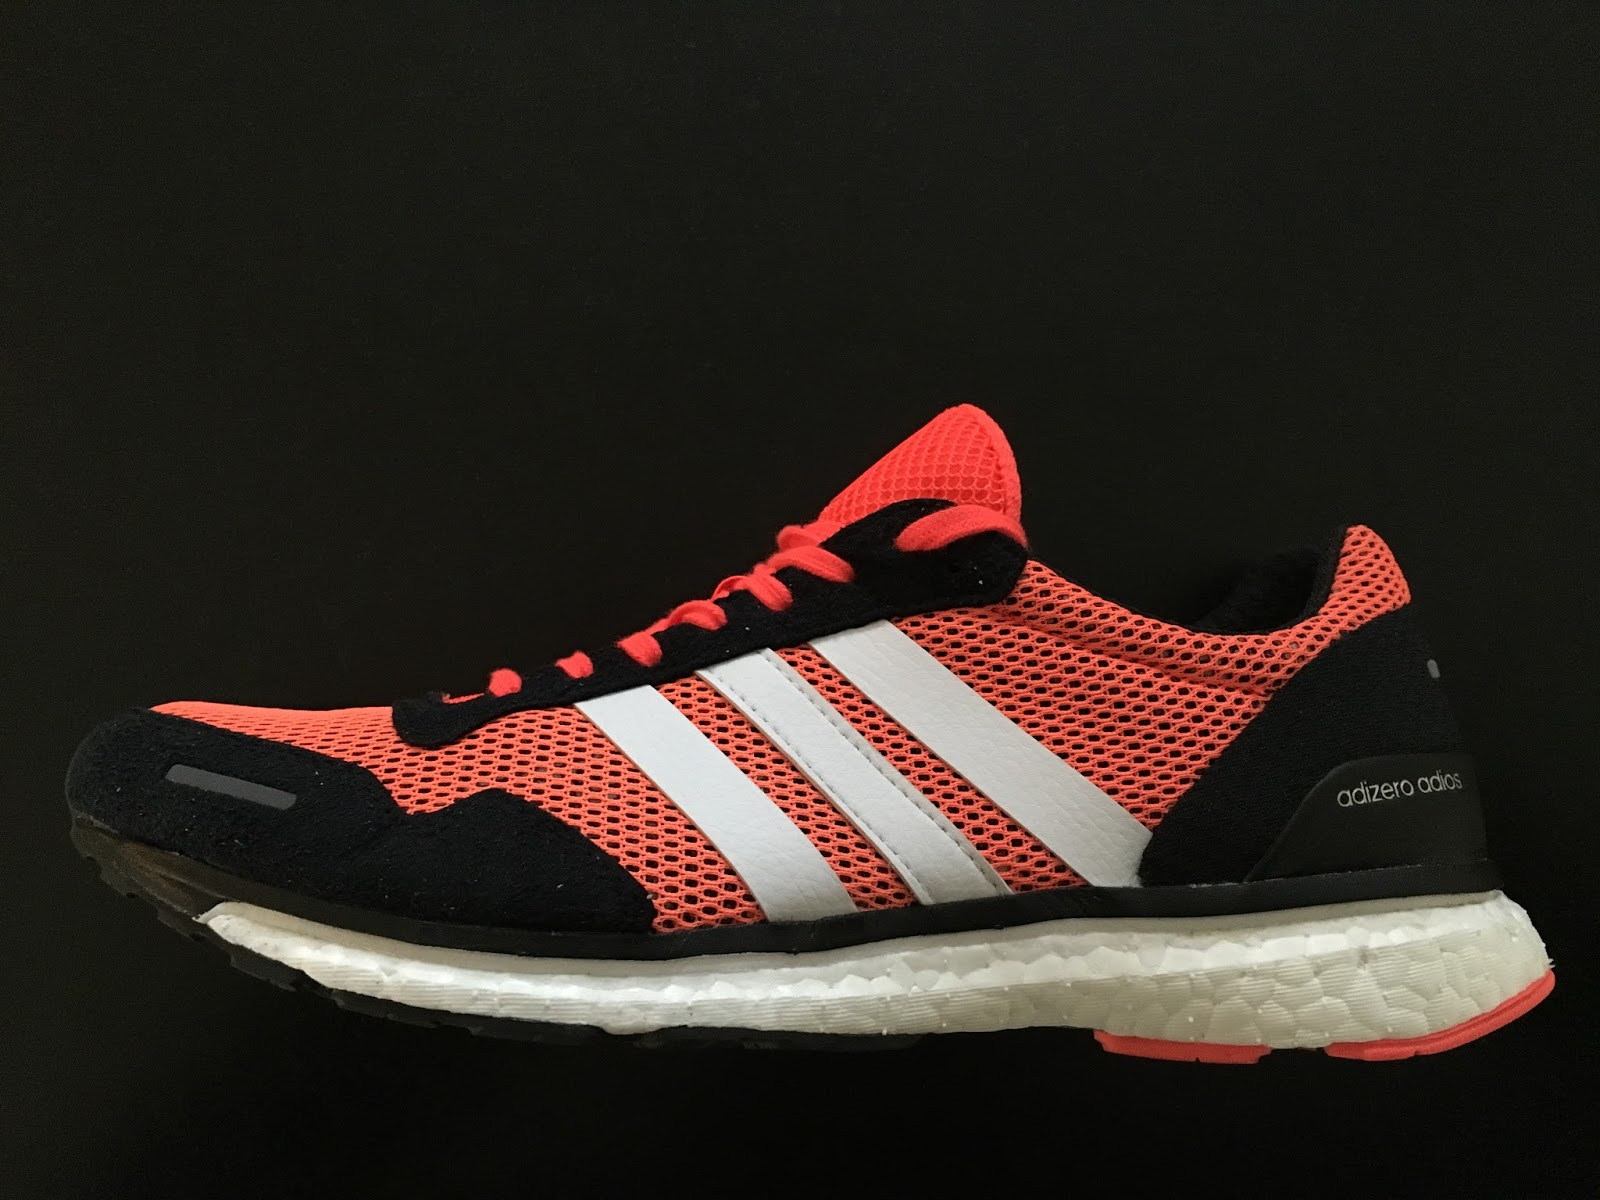 new arrival bcb5c c870d The adidas adizero adios Boost 3 is the latest iteration of the shoe worn  by Dennis Kimetto to the marathon world record of 202.57 in 2014.